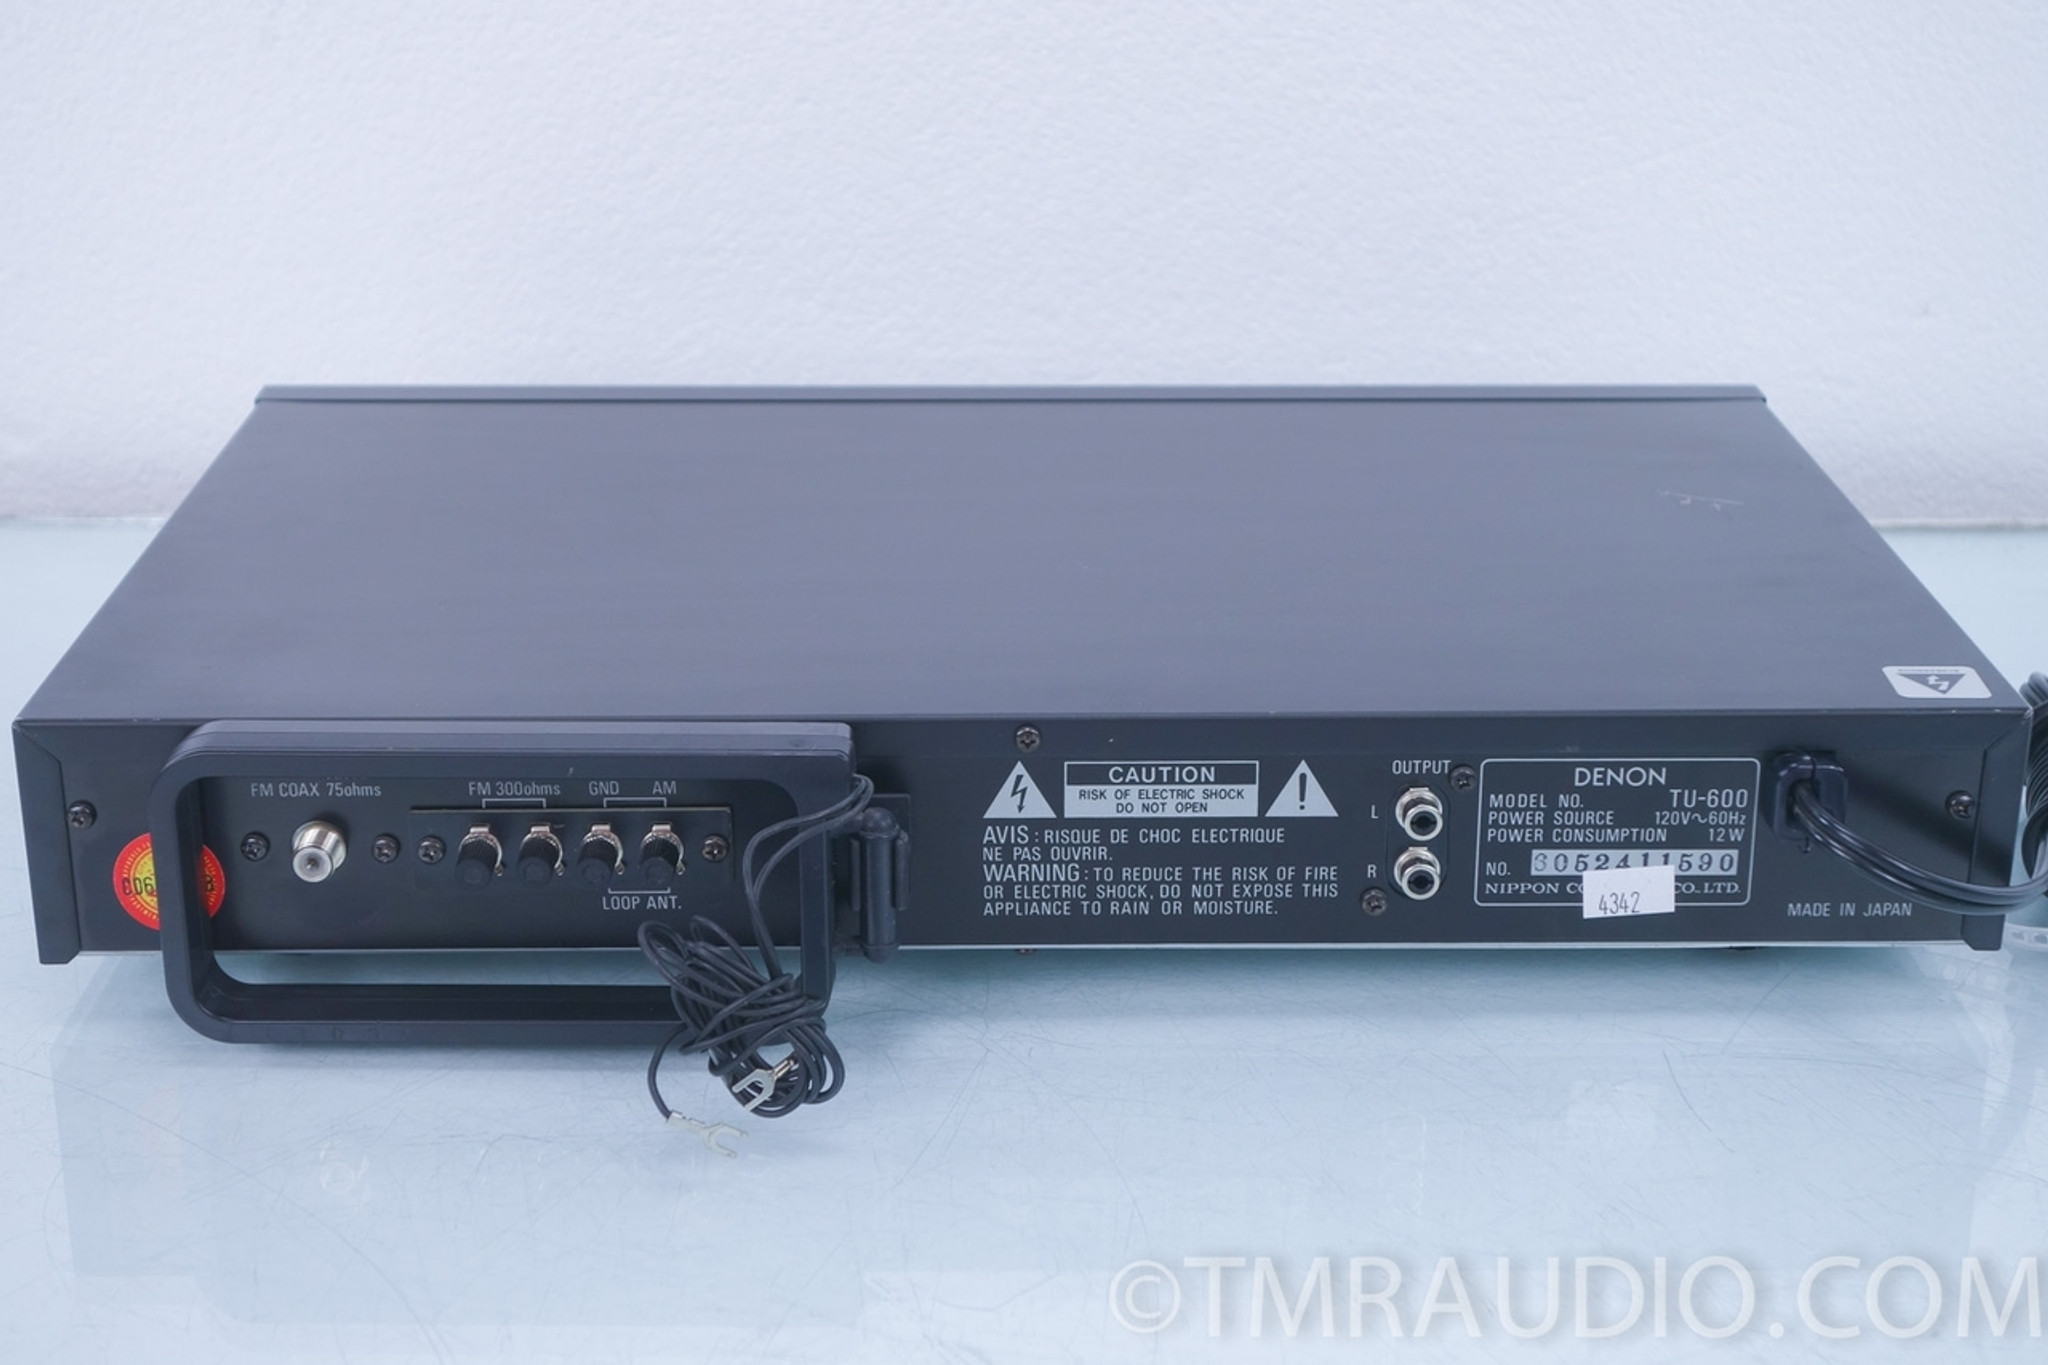 Denon TU-600 Digital AM /FM Stereo Tuner